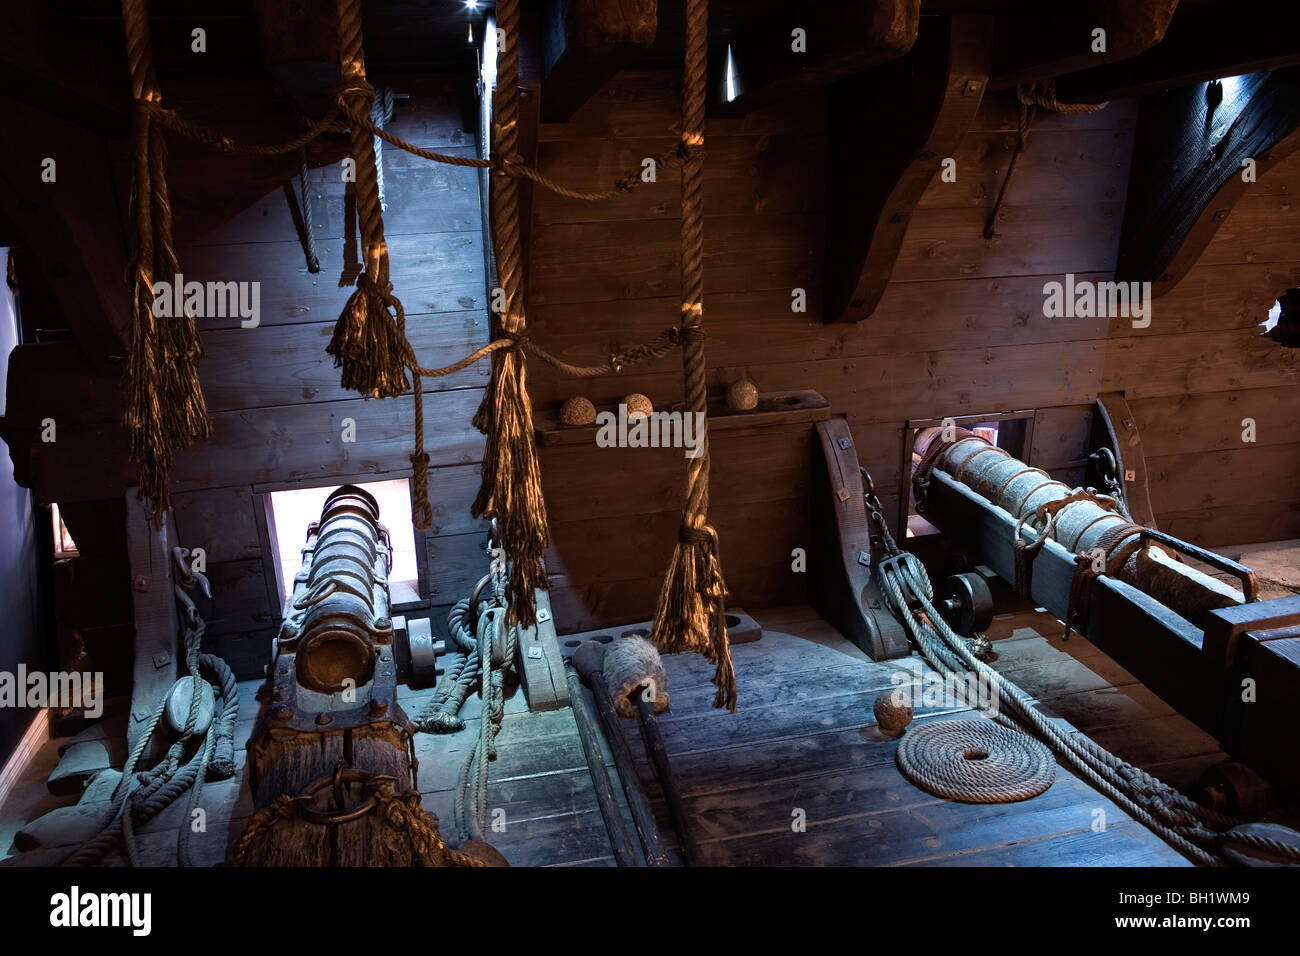 Interior view of a pirate's ship with cannons, Museum fuer Hamburgische Geschichte., Hamburg, Germany, Europe - Stock Image